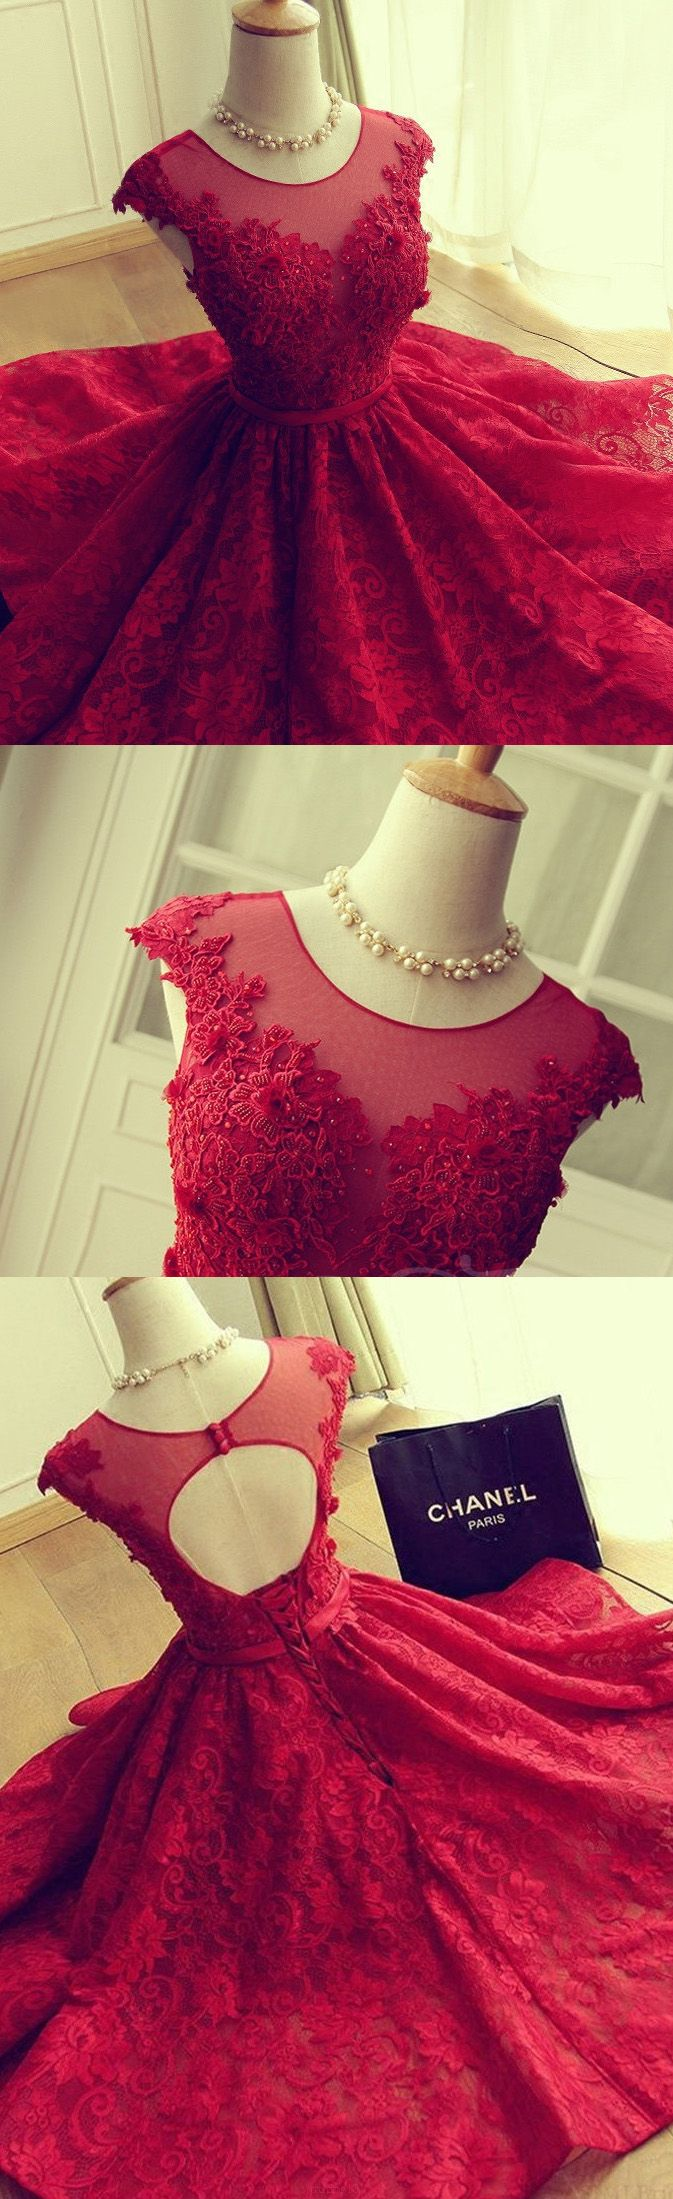 Red Prom Dresses, Short Prom Dresses, Lace Prom Dr… -  Corsets are alive and well on Pinterest. Compare prices for this @ Wrhel.com before you commit to buy. #Wrhel #Fashion #Corset